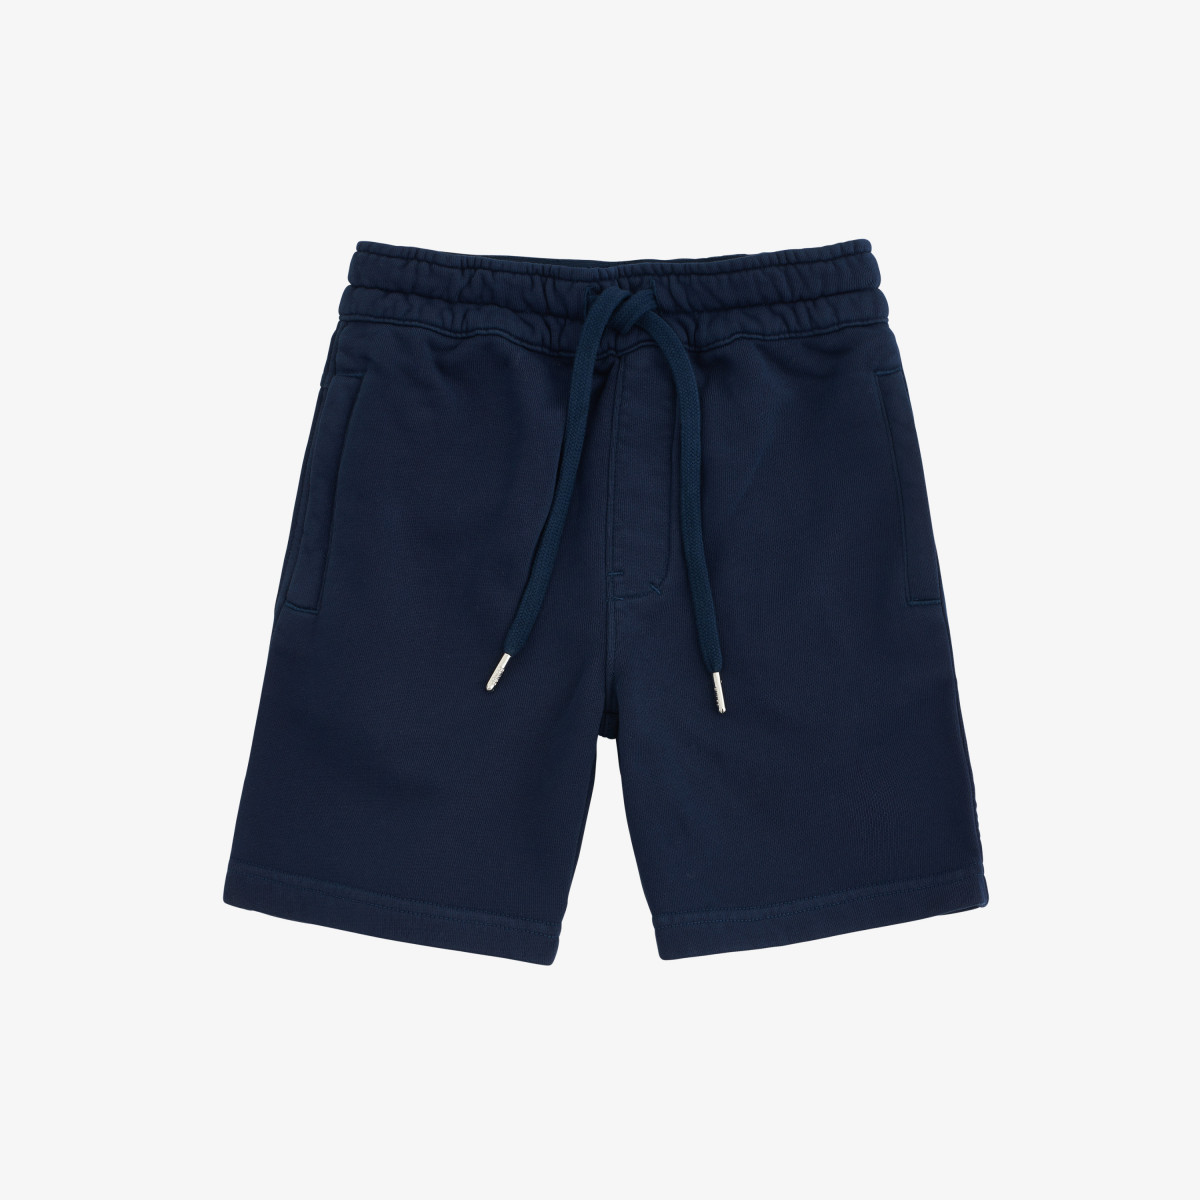 BOY'S PANT SHORT COLD DYE COTT. FL. NAVY BLUE